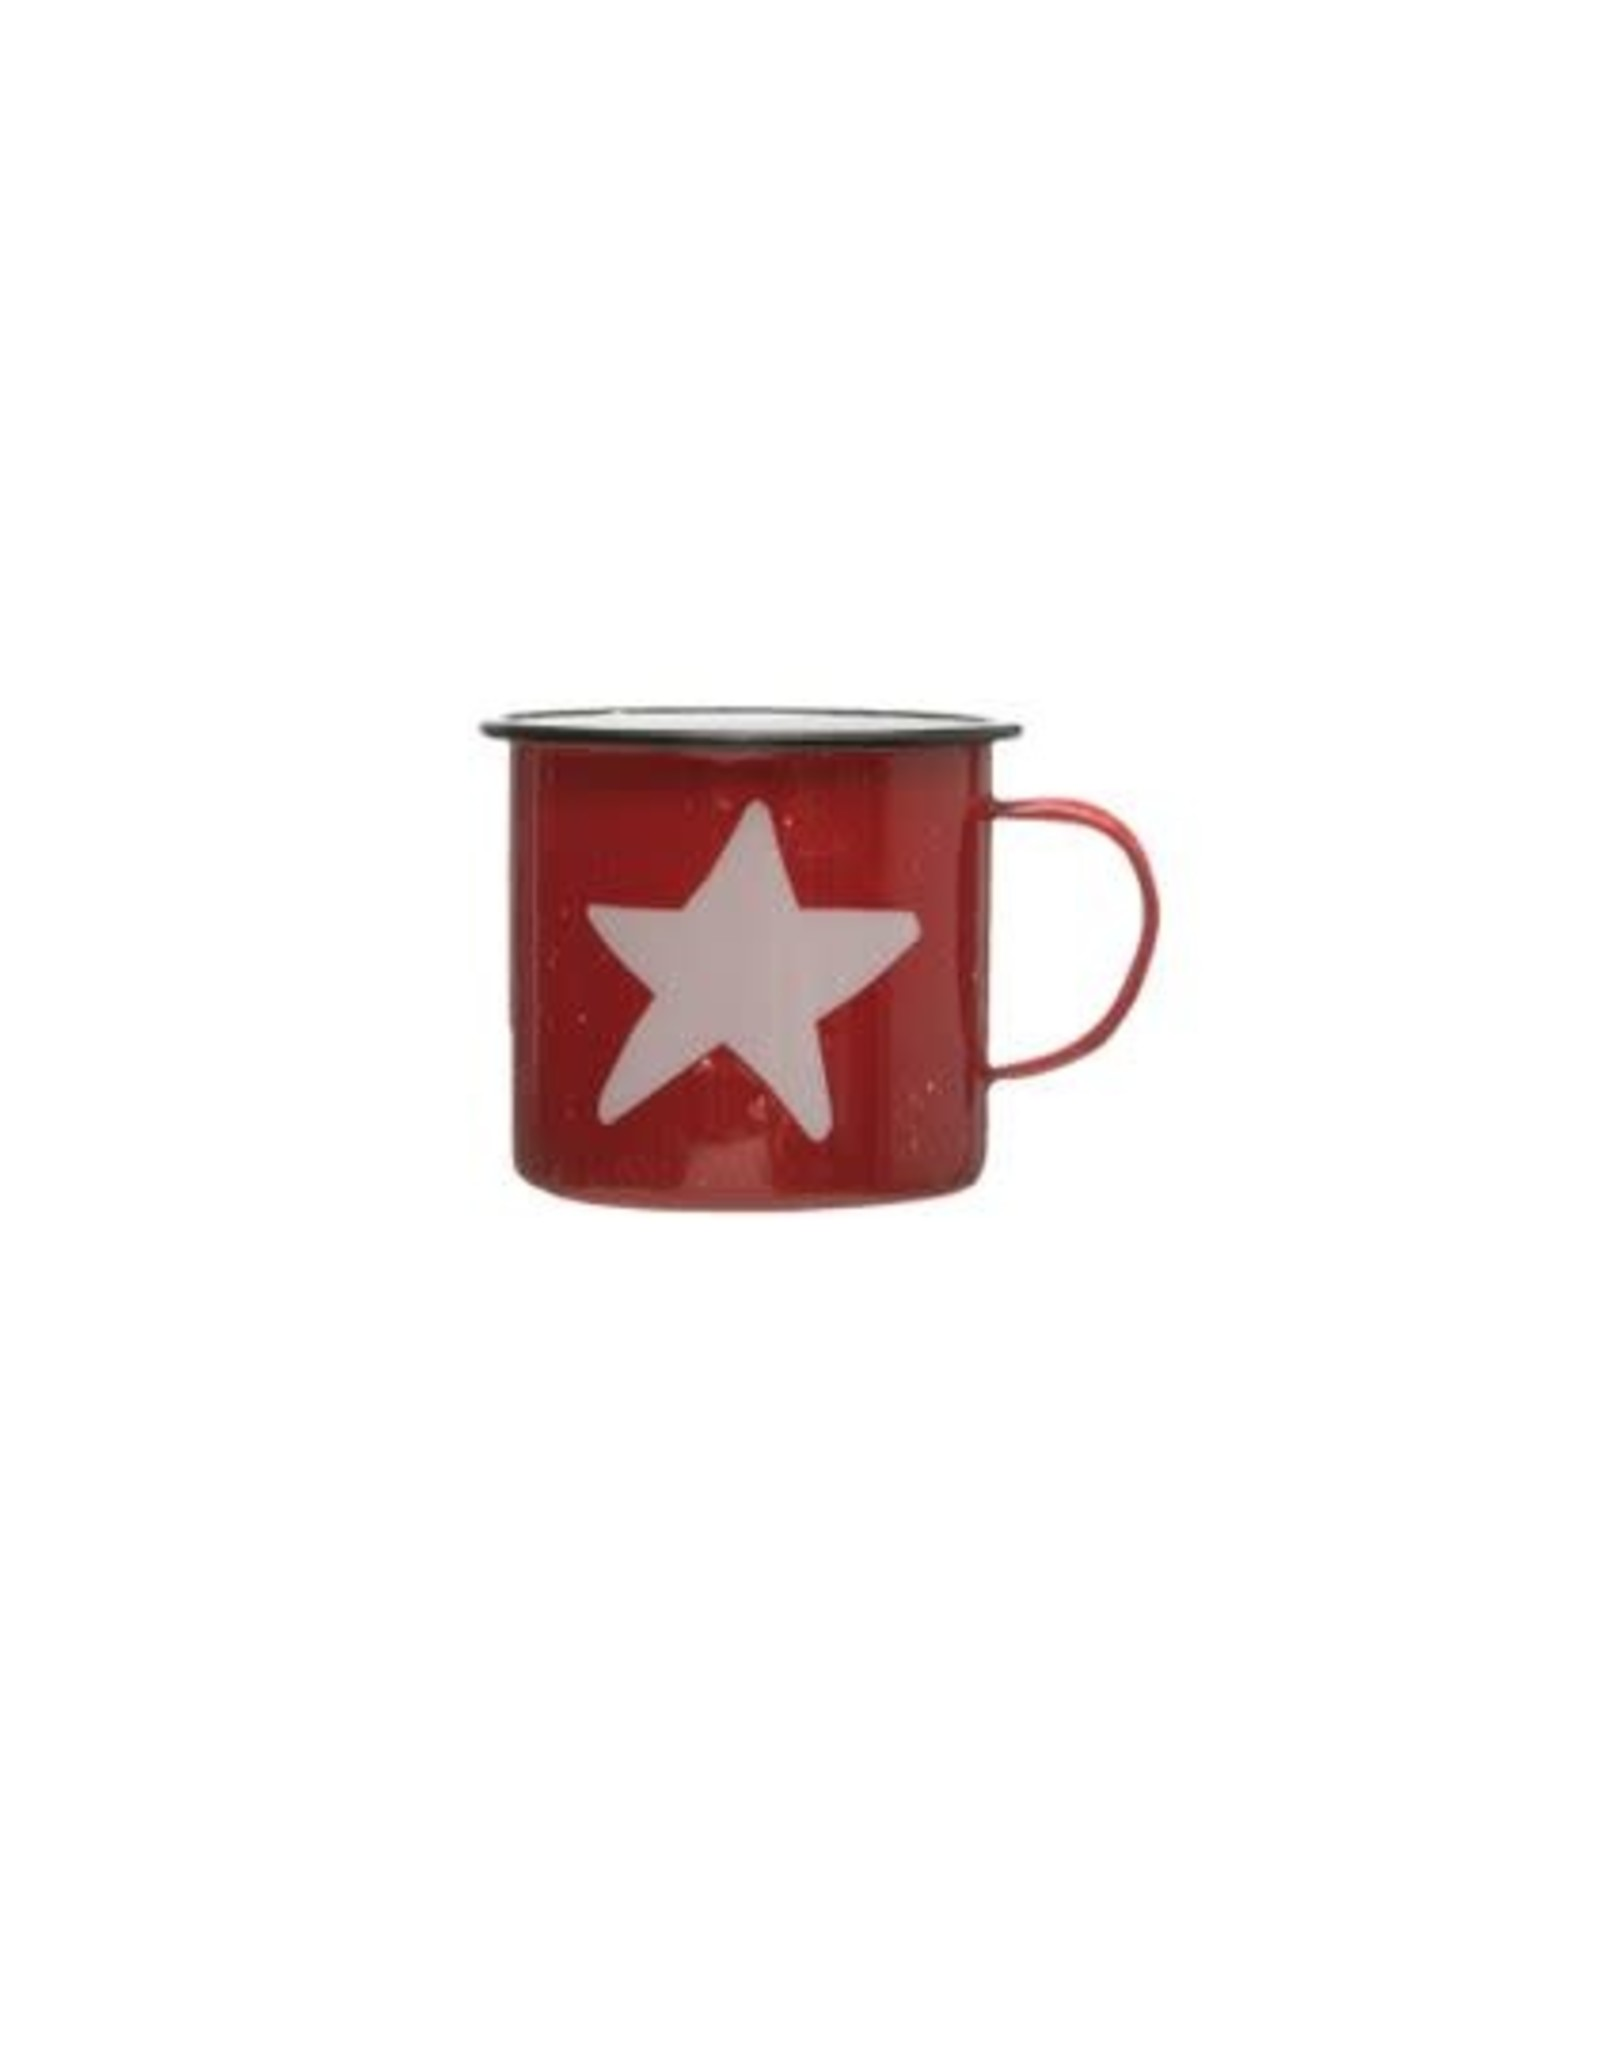 Enameled Mug - Star